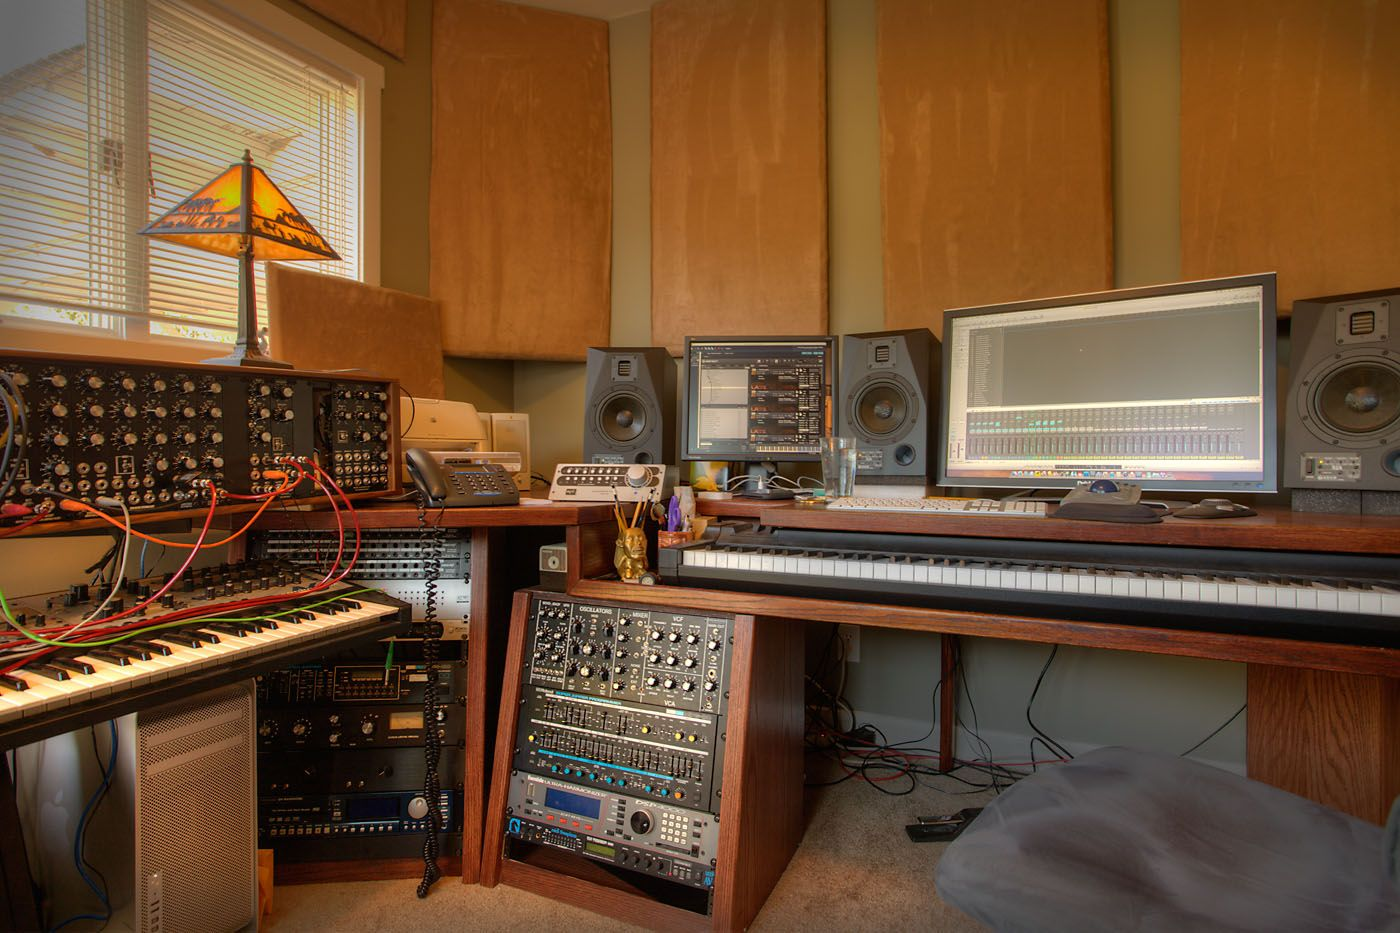 Prime 17 Best Images About Art Music Studio On Pinterest Music Rooms Largest Home Design Picture Inspirations Pitcheantrous